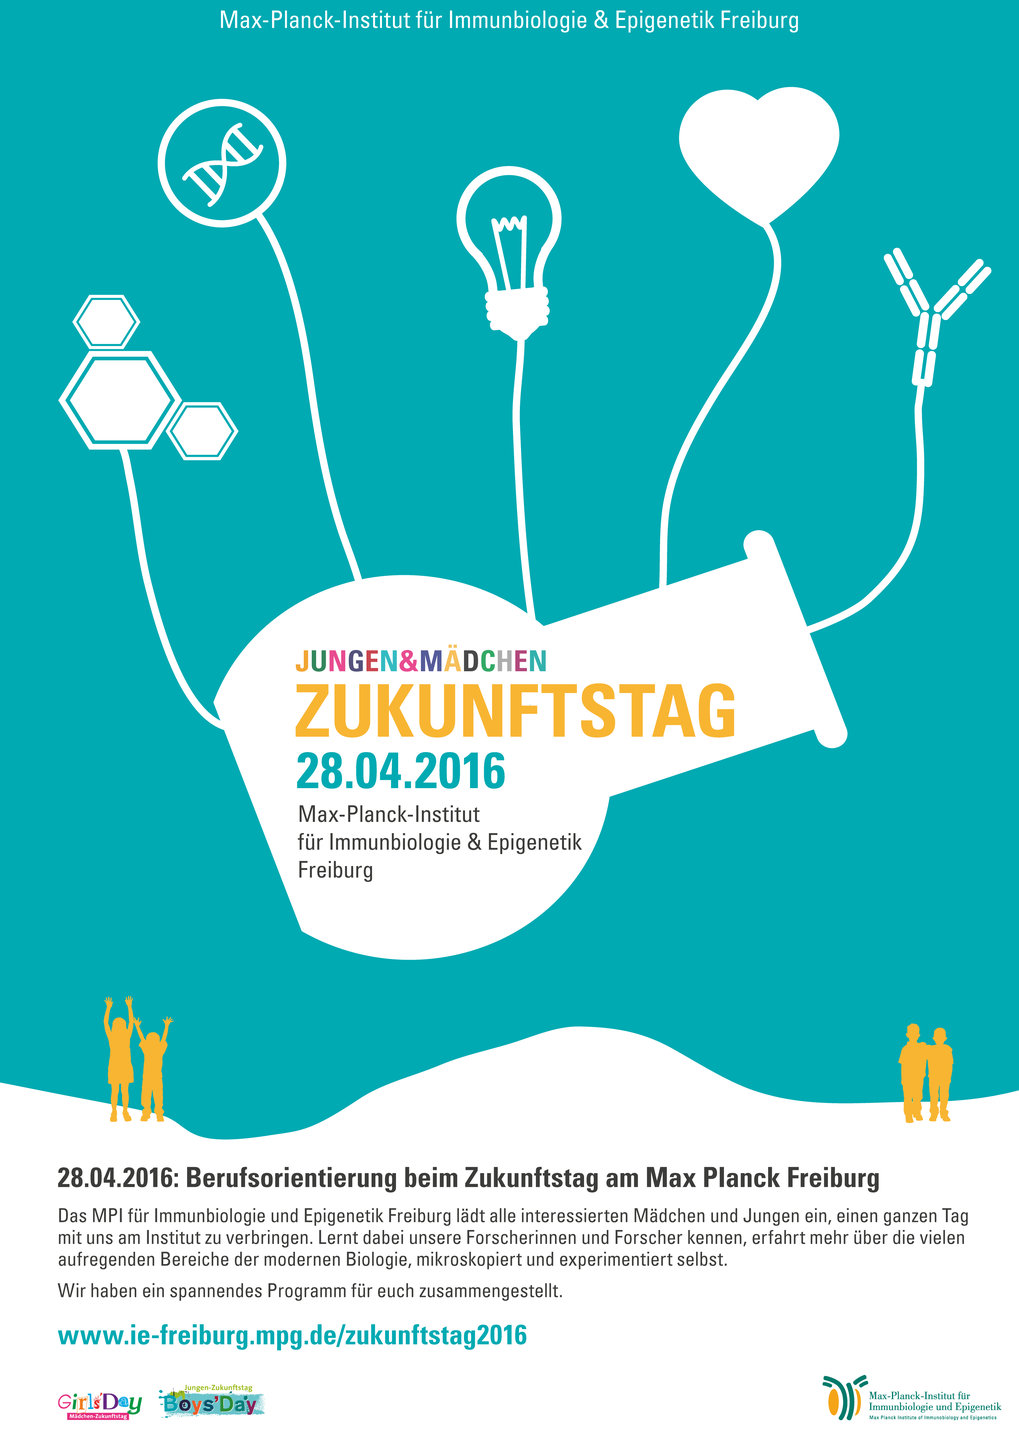 Poster – Zukunftstag 2016 at the MPI Freiburg